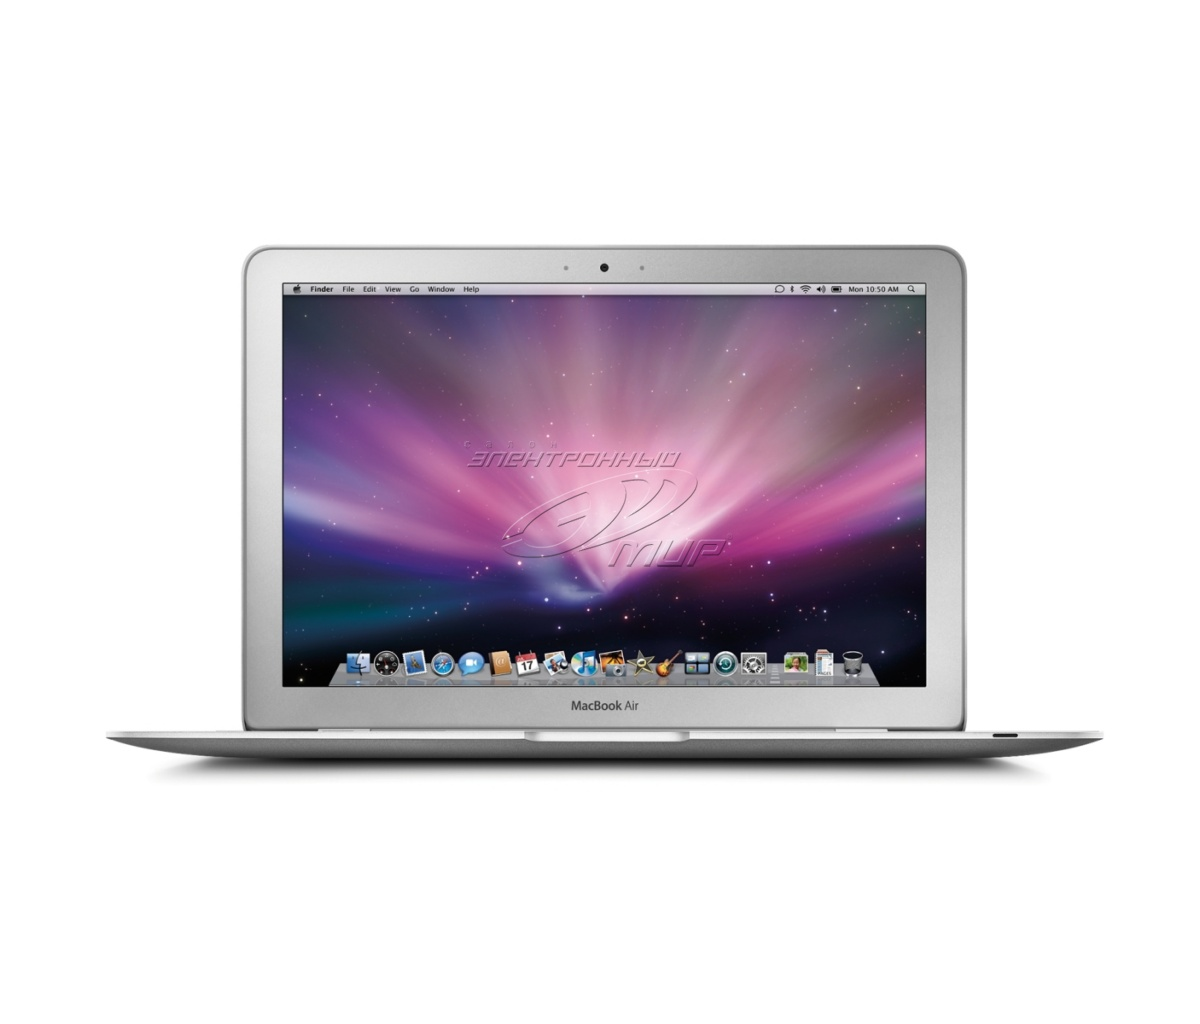 Macbook Air)(Display Replacement)(Bandra West Mumbai